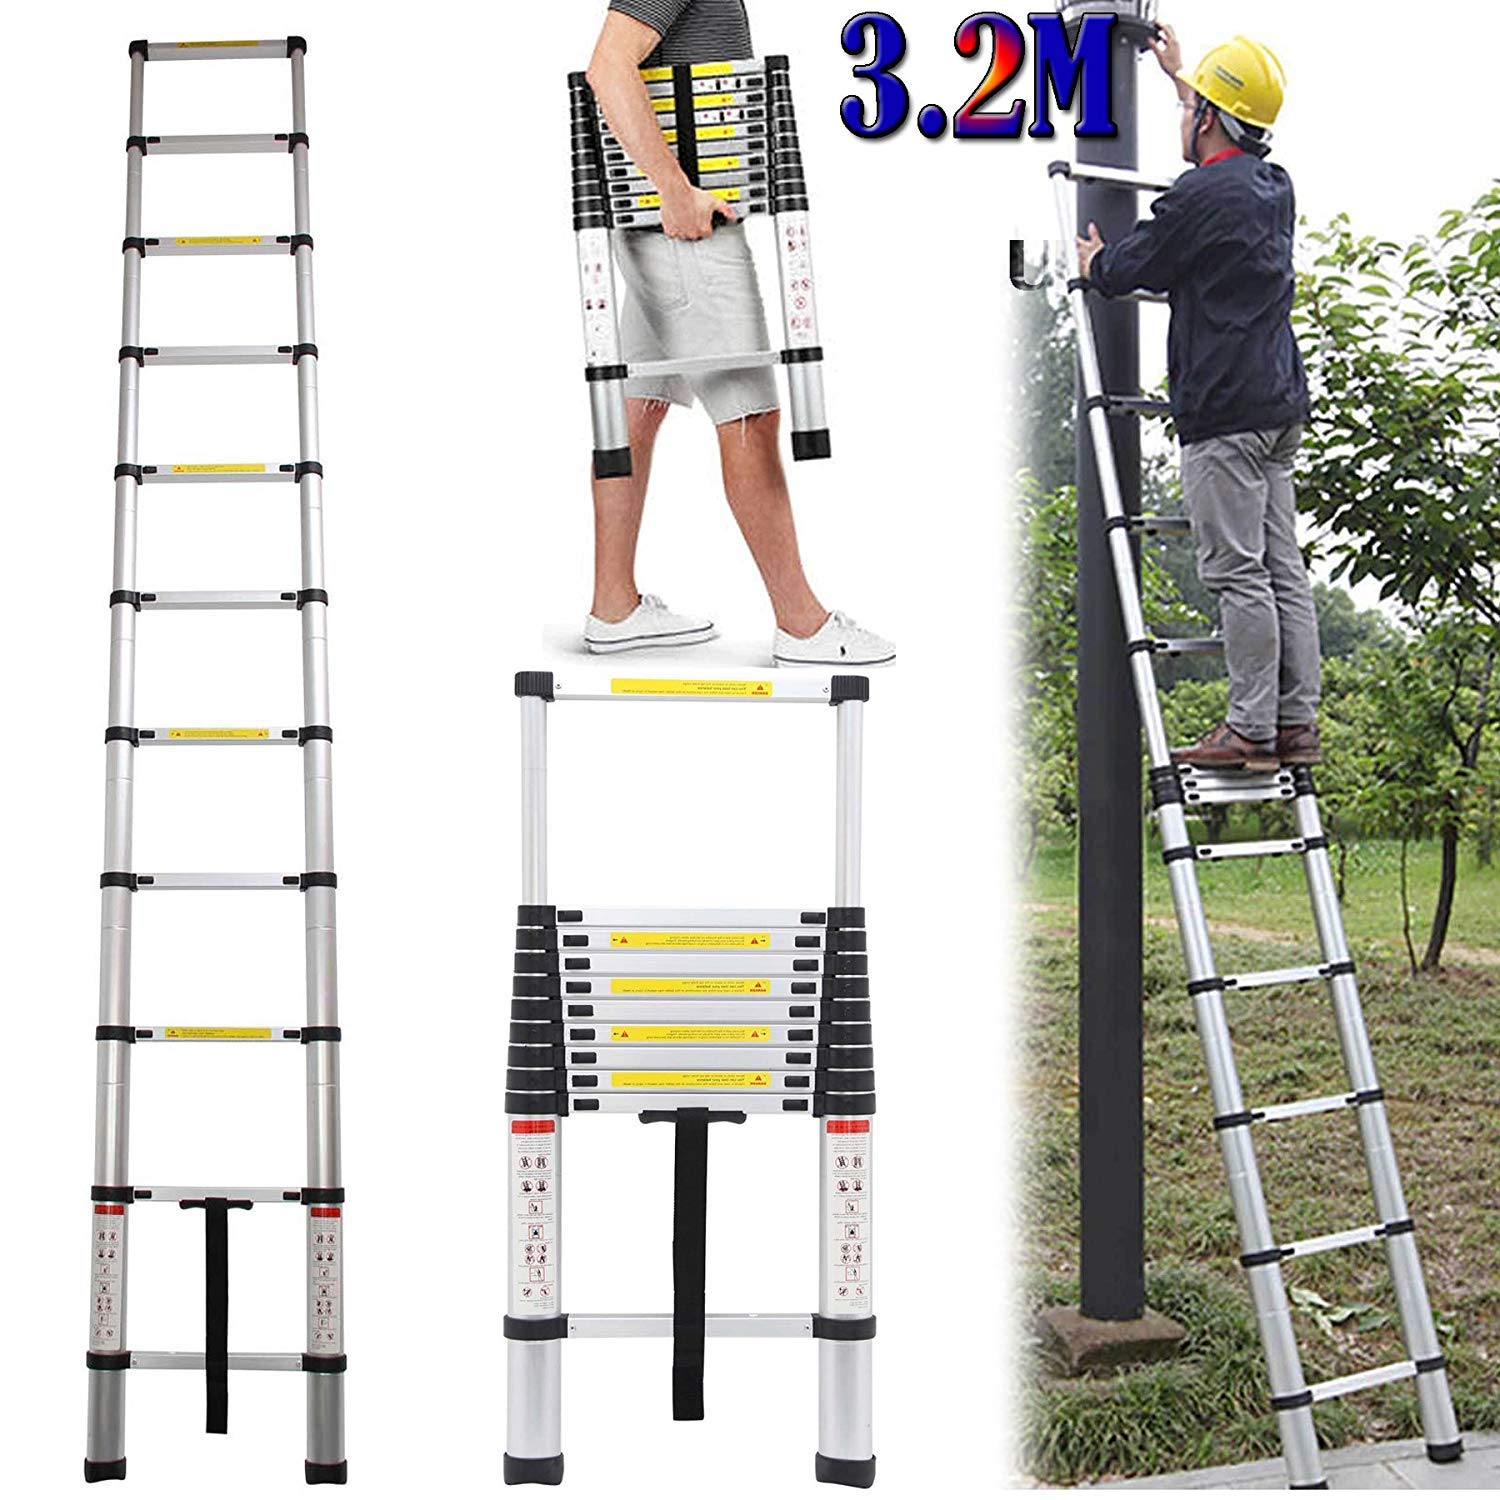 Luisladders 12.5ft Aluminum Telescopic Extension Ladder Extendable Telescoping EN131 Certified 330 lb Max Capacity with Spring Load Locking Mechanism Anti-Pinch /& Non-Slip